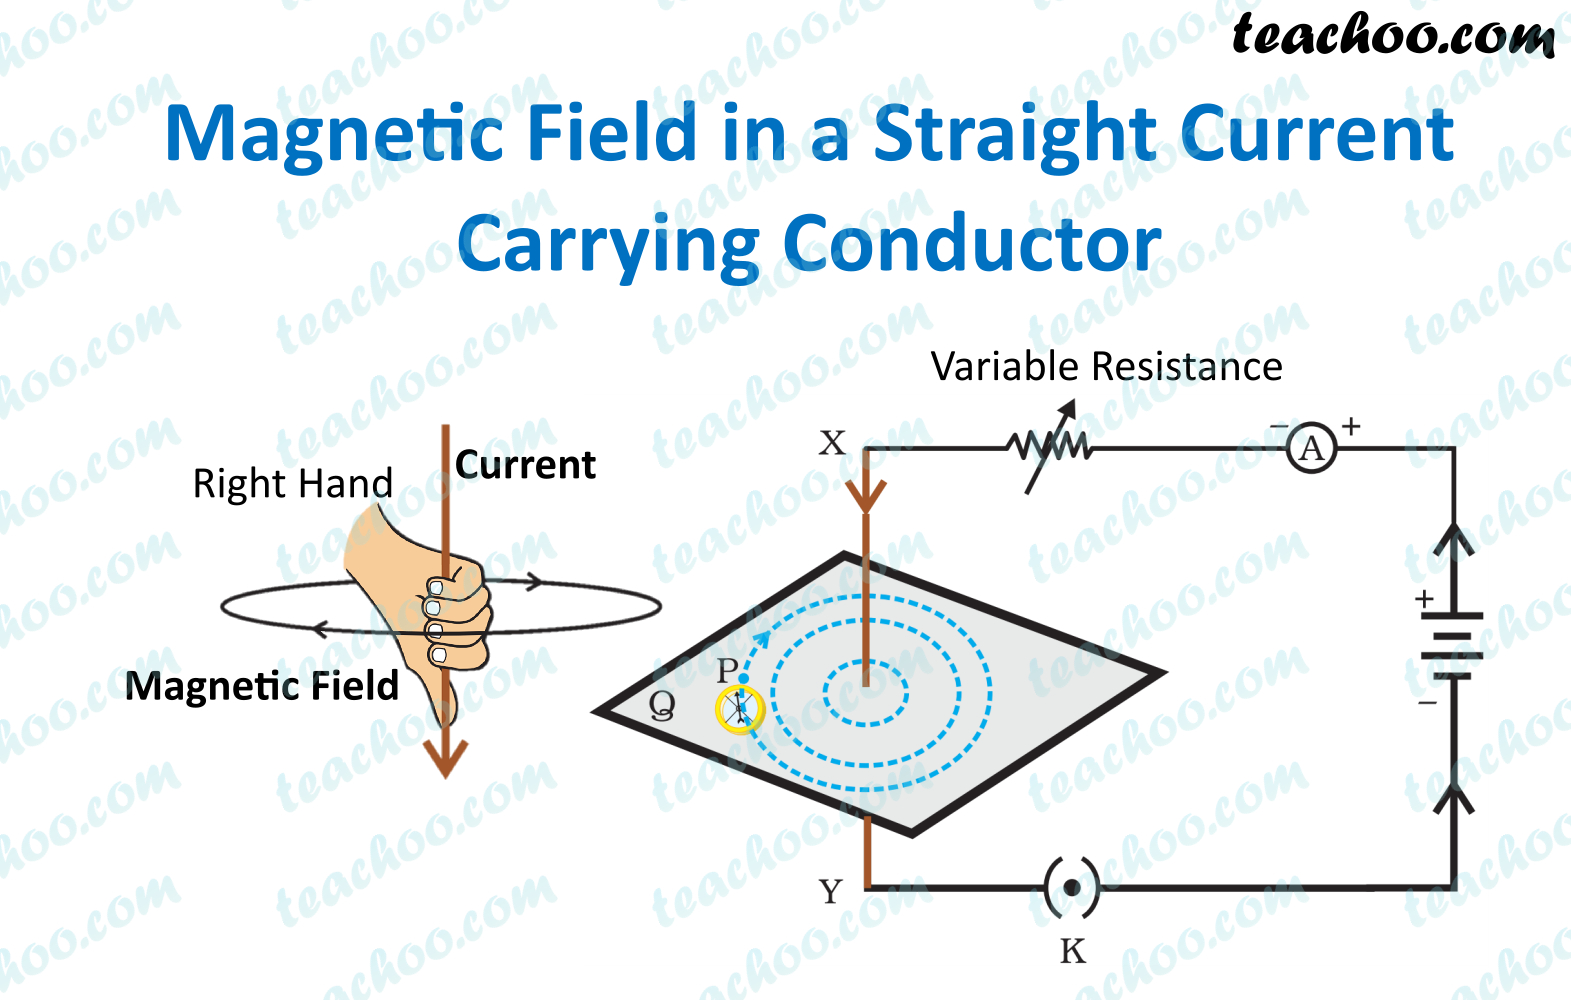 magnetic-field-in-a-straight-current-carrying-conductor---teachoo.jpg